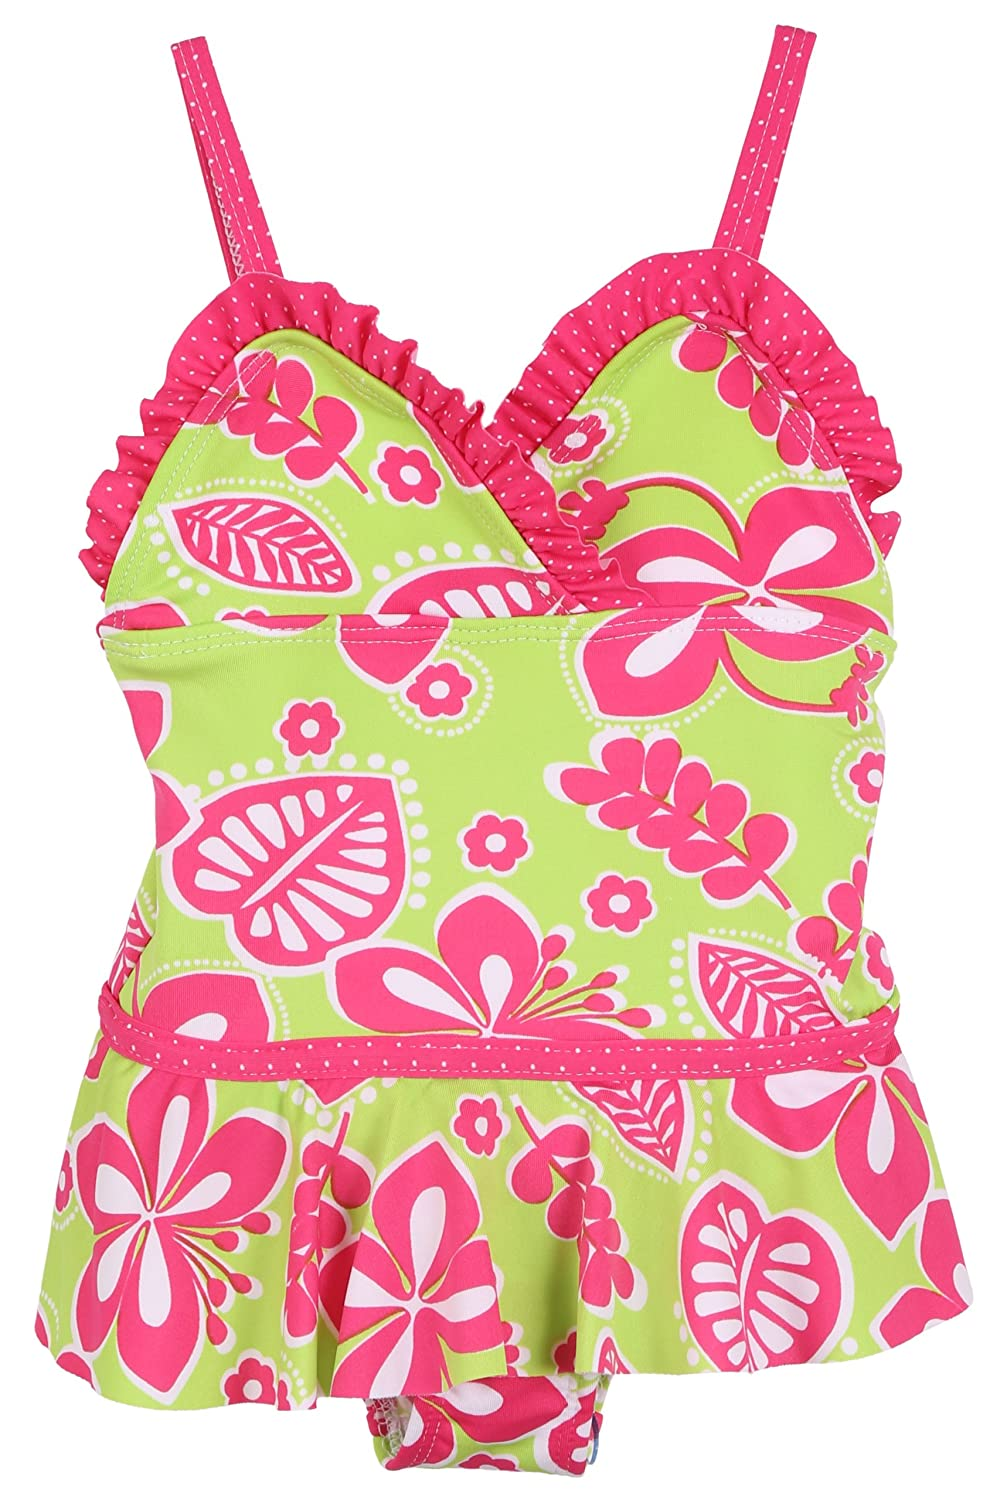 Sizes 12M-4T Wiippette Girls Baby UV Protection Swimsuit and Sandals Set